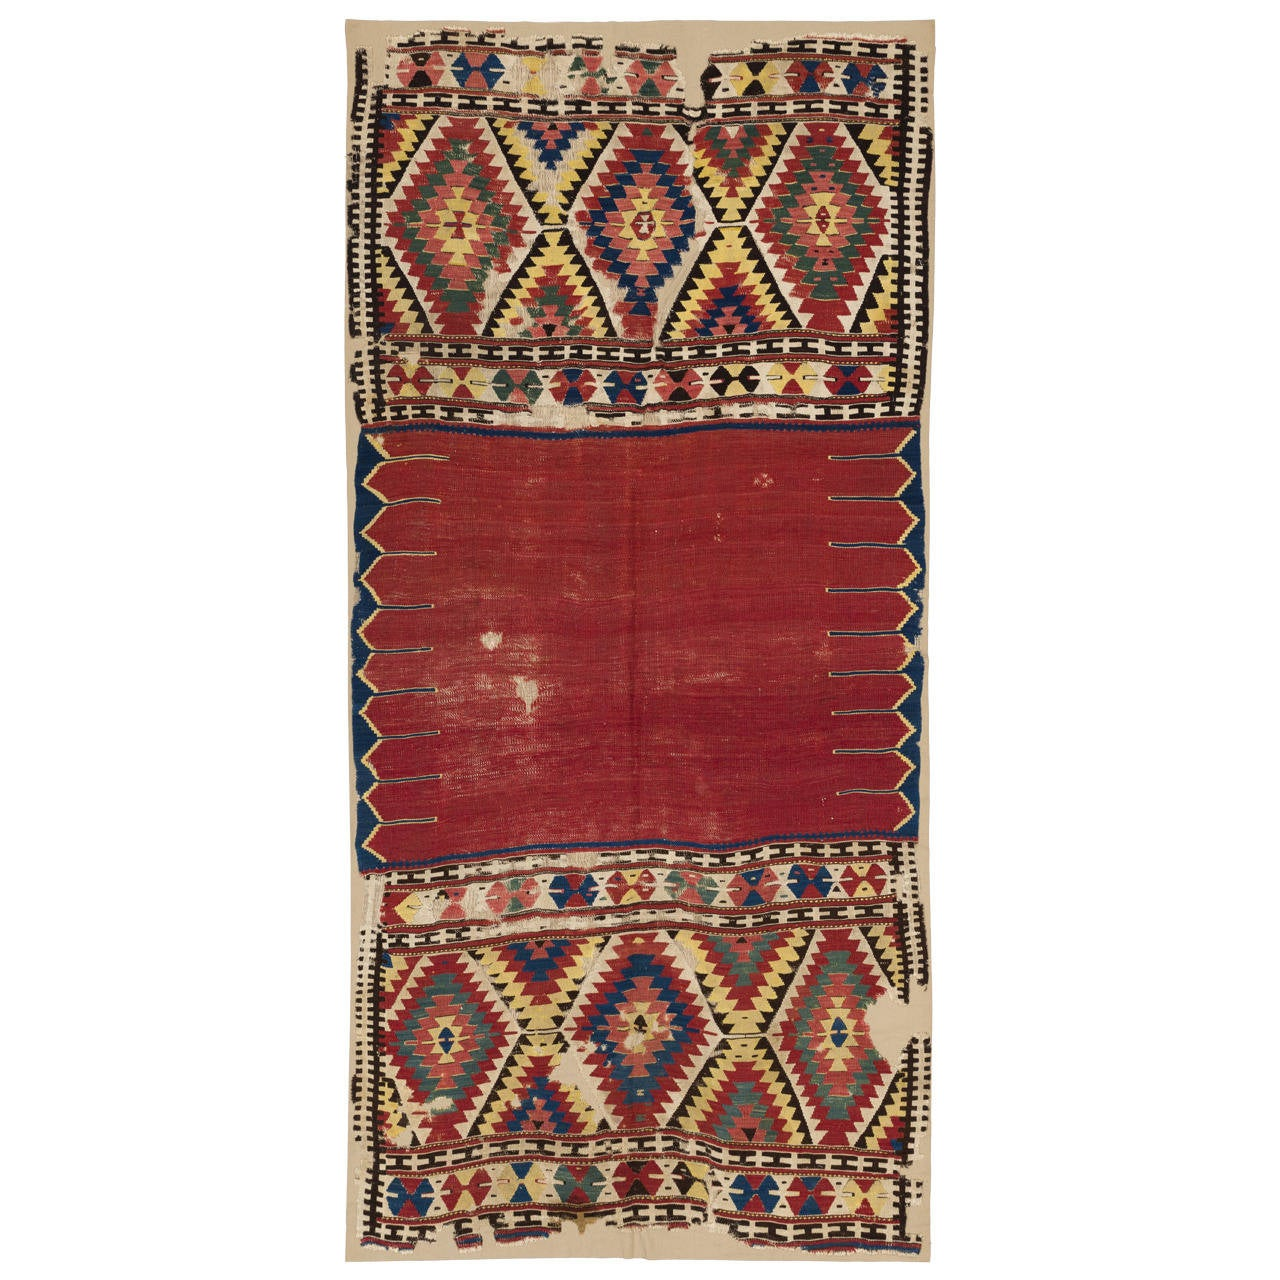 18th century ottoman Back to an educational guide to antique anatolian rugs and carpets main page ottoman carpets in the xvi - xvii centuries (16-17th centuries.